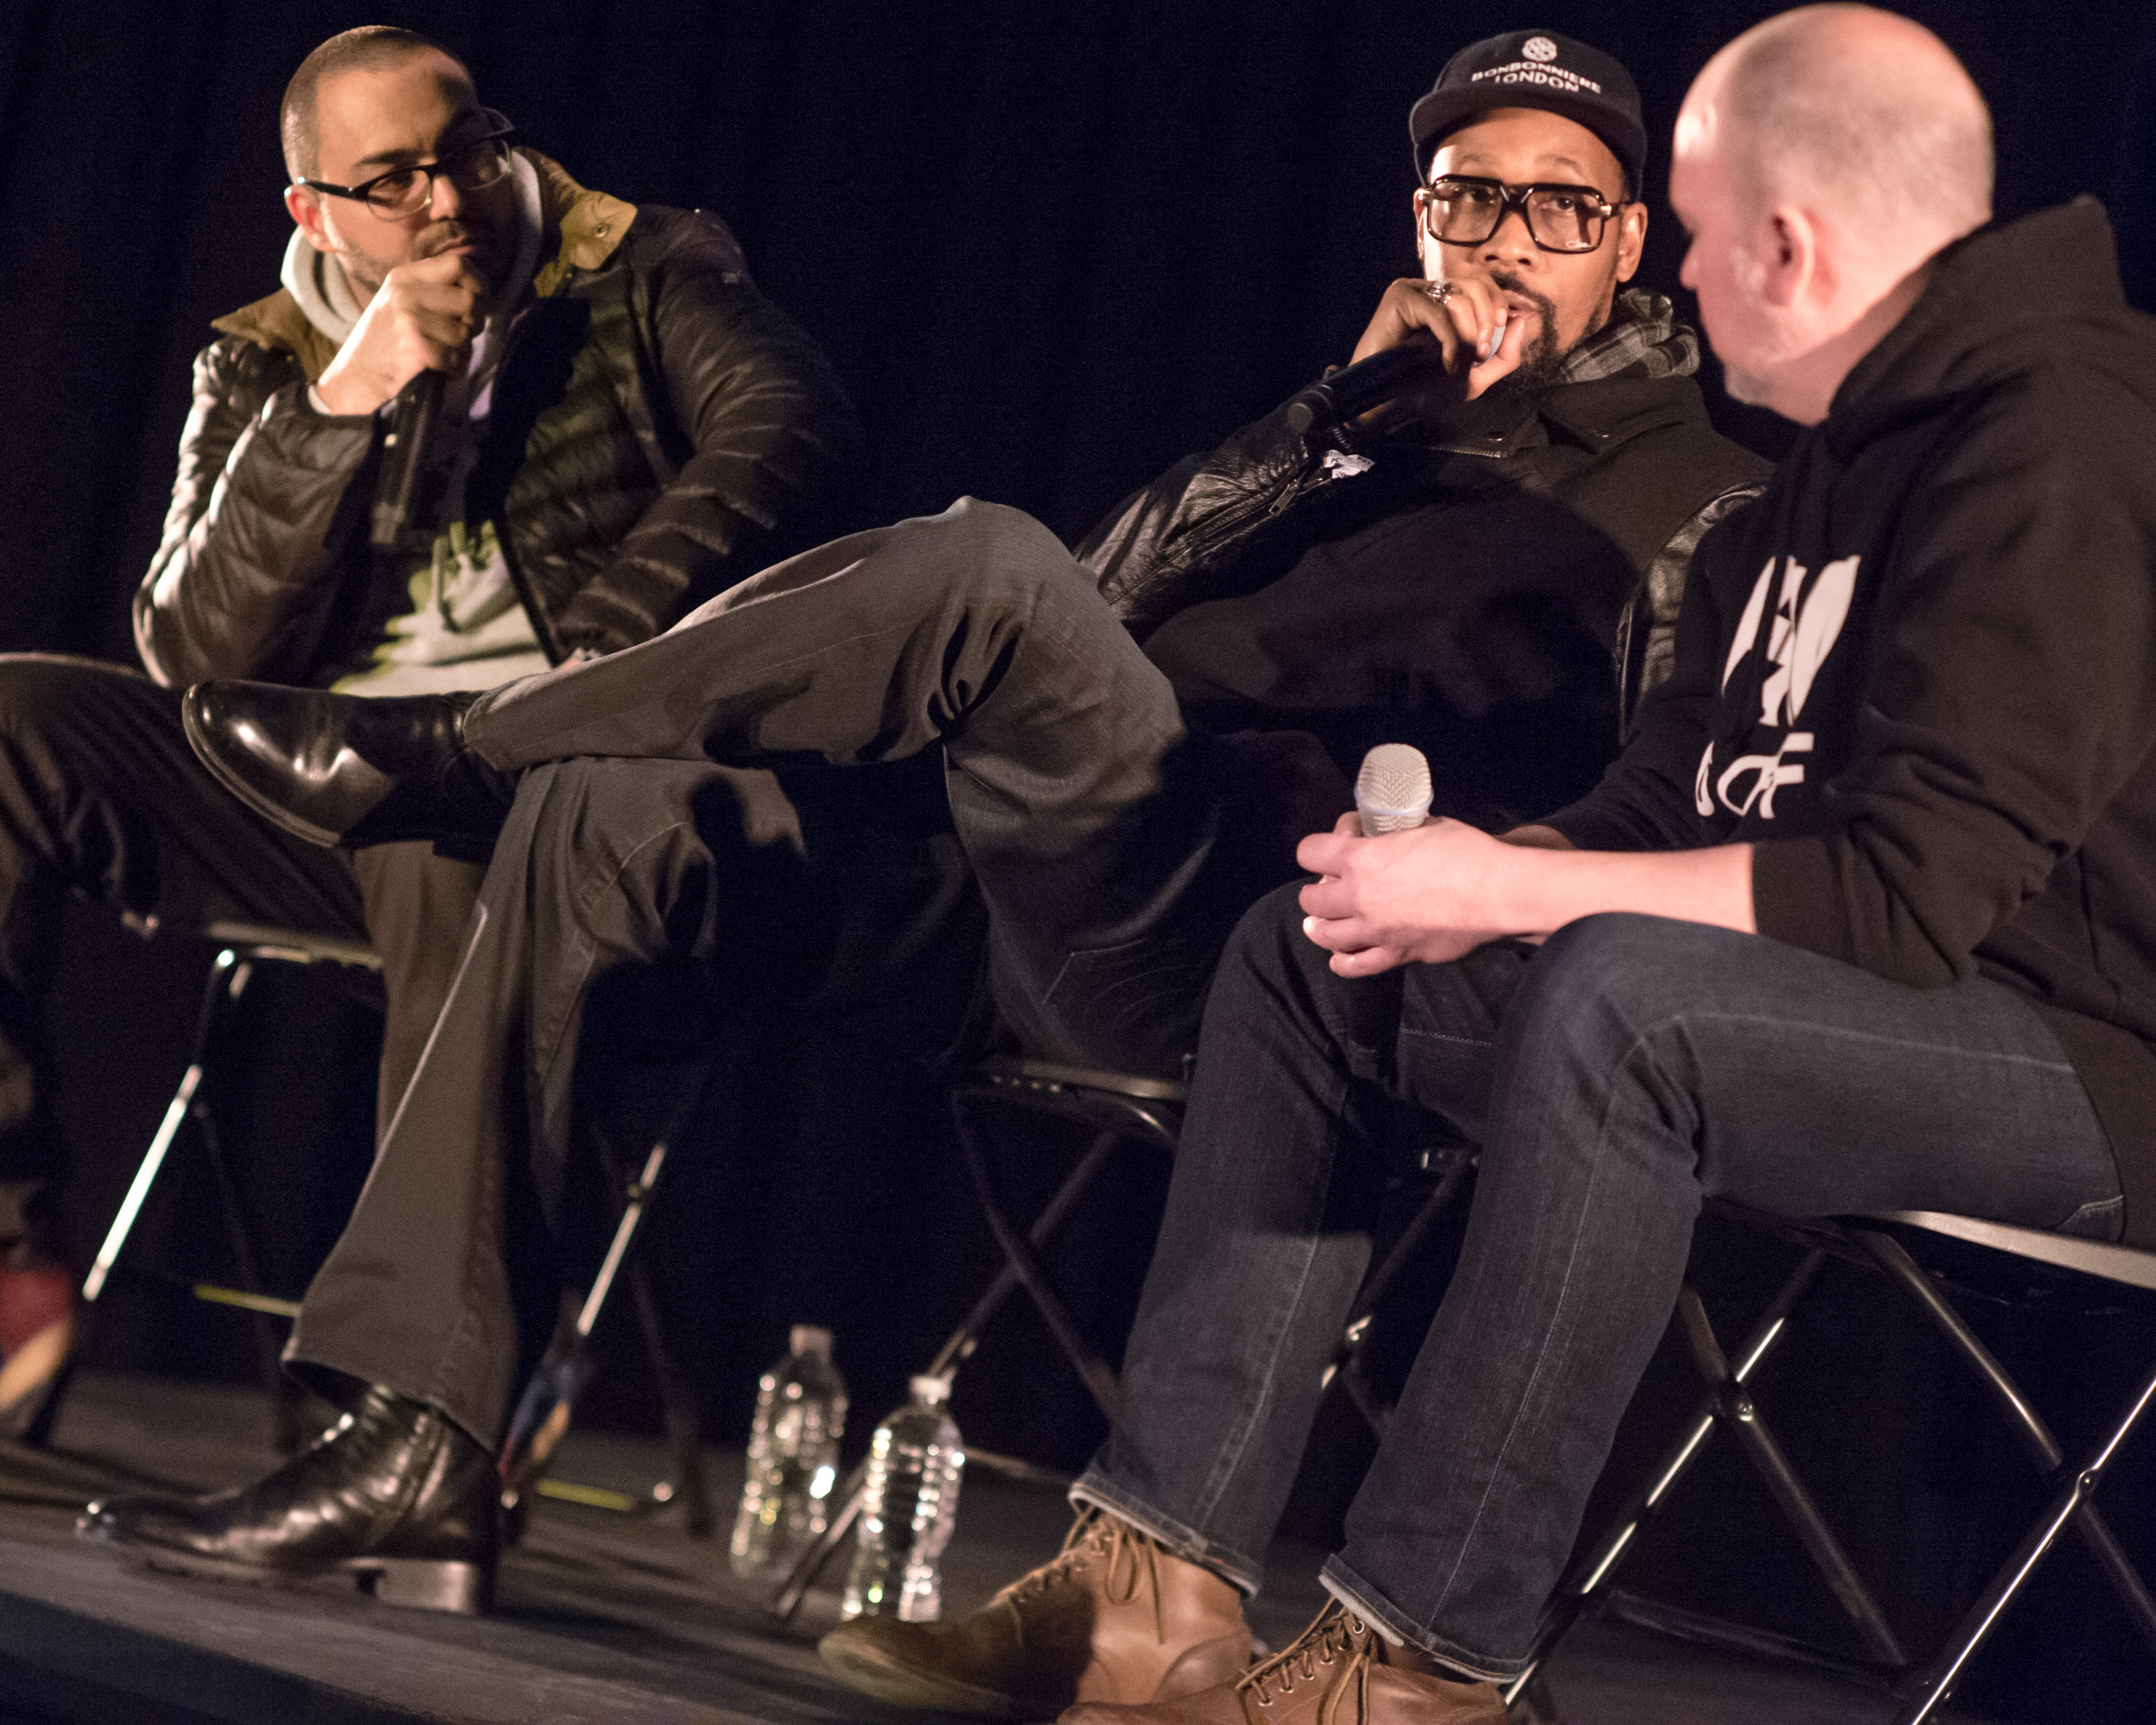 Inside Wu-Tang Clan's 'First, Last, Only' Listening Session for New LP